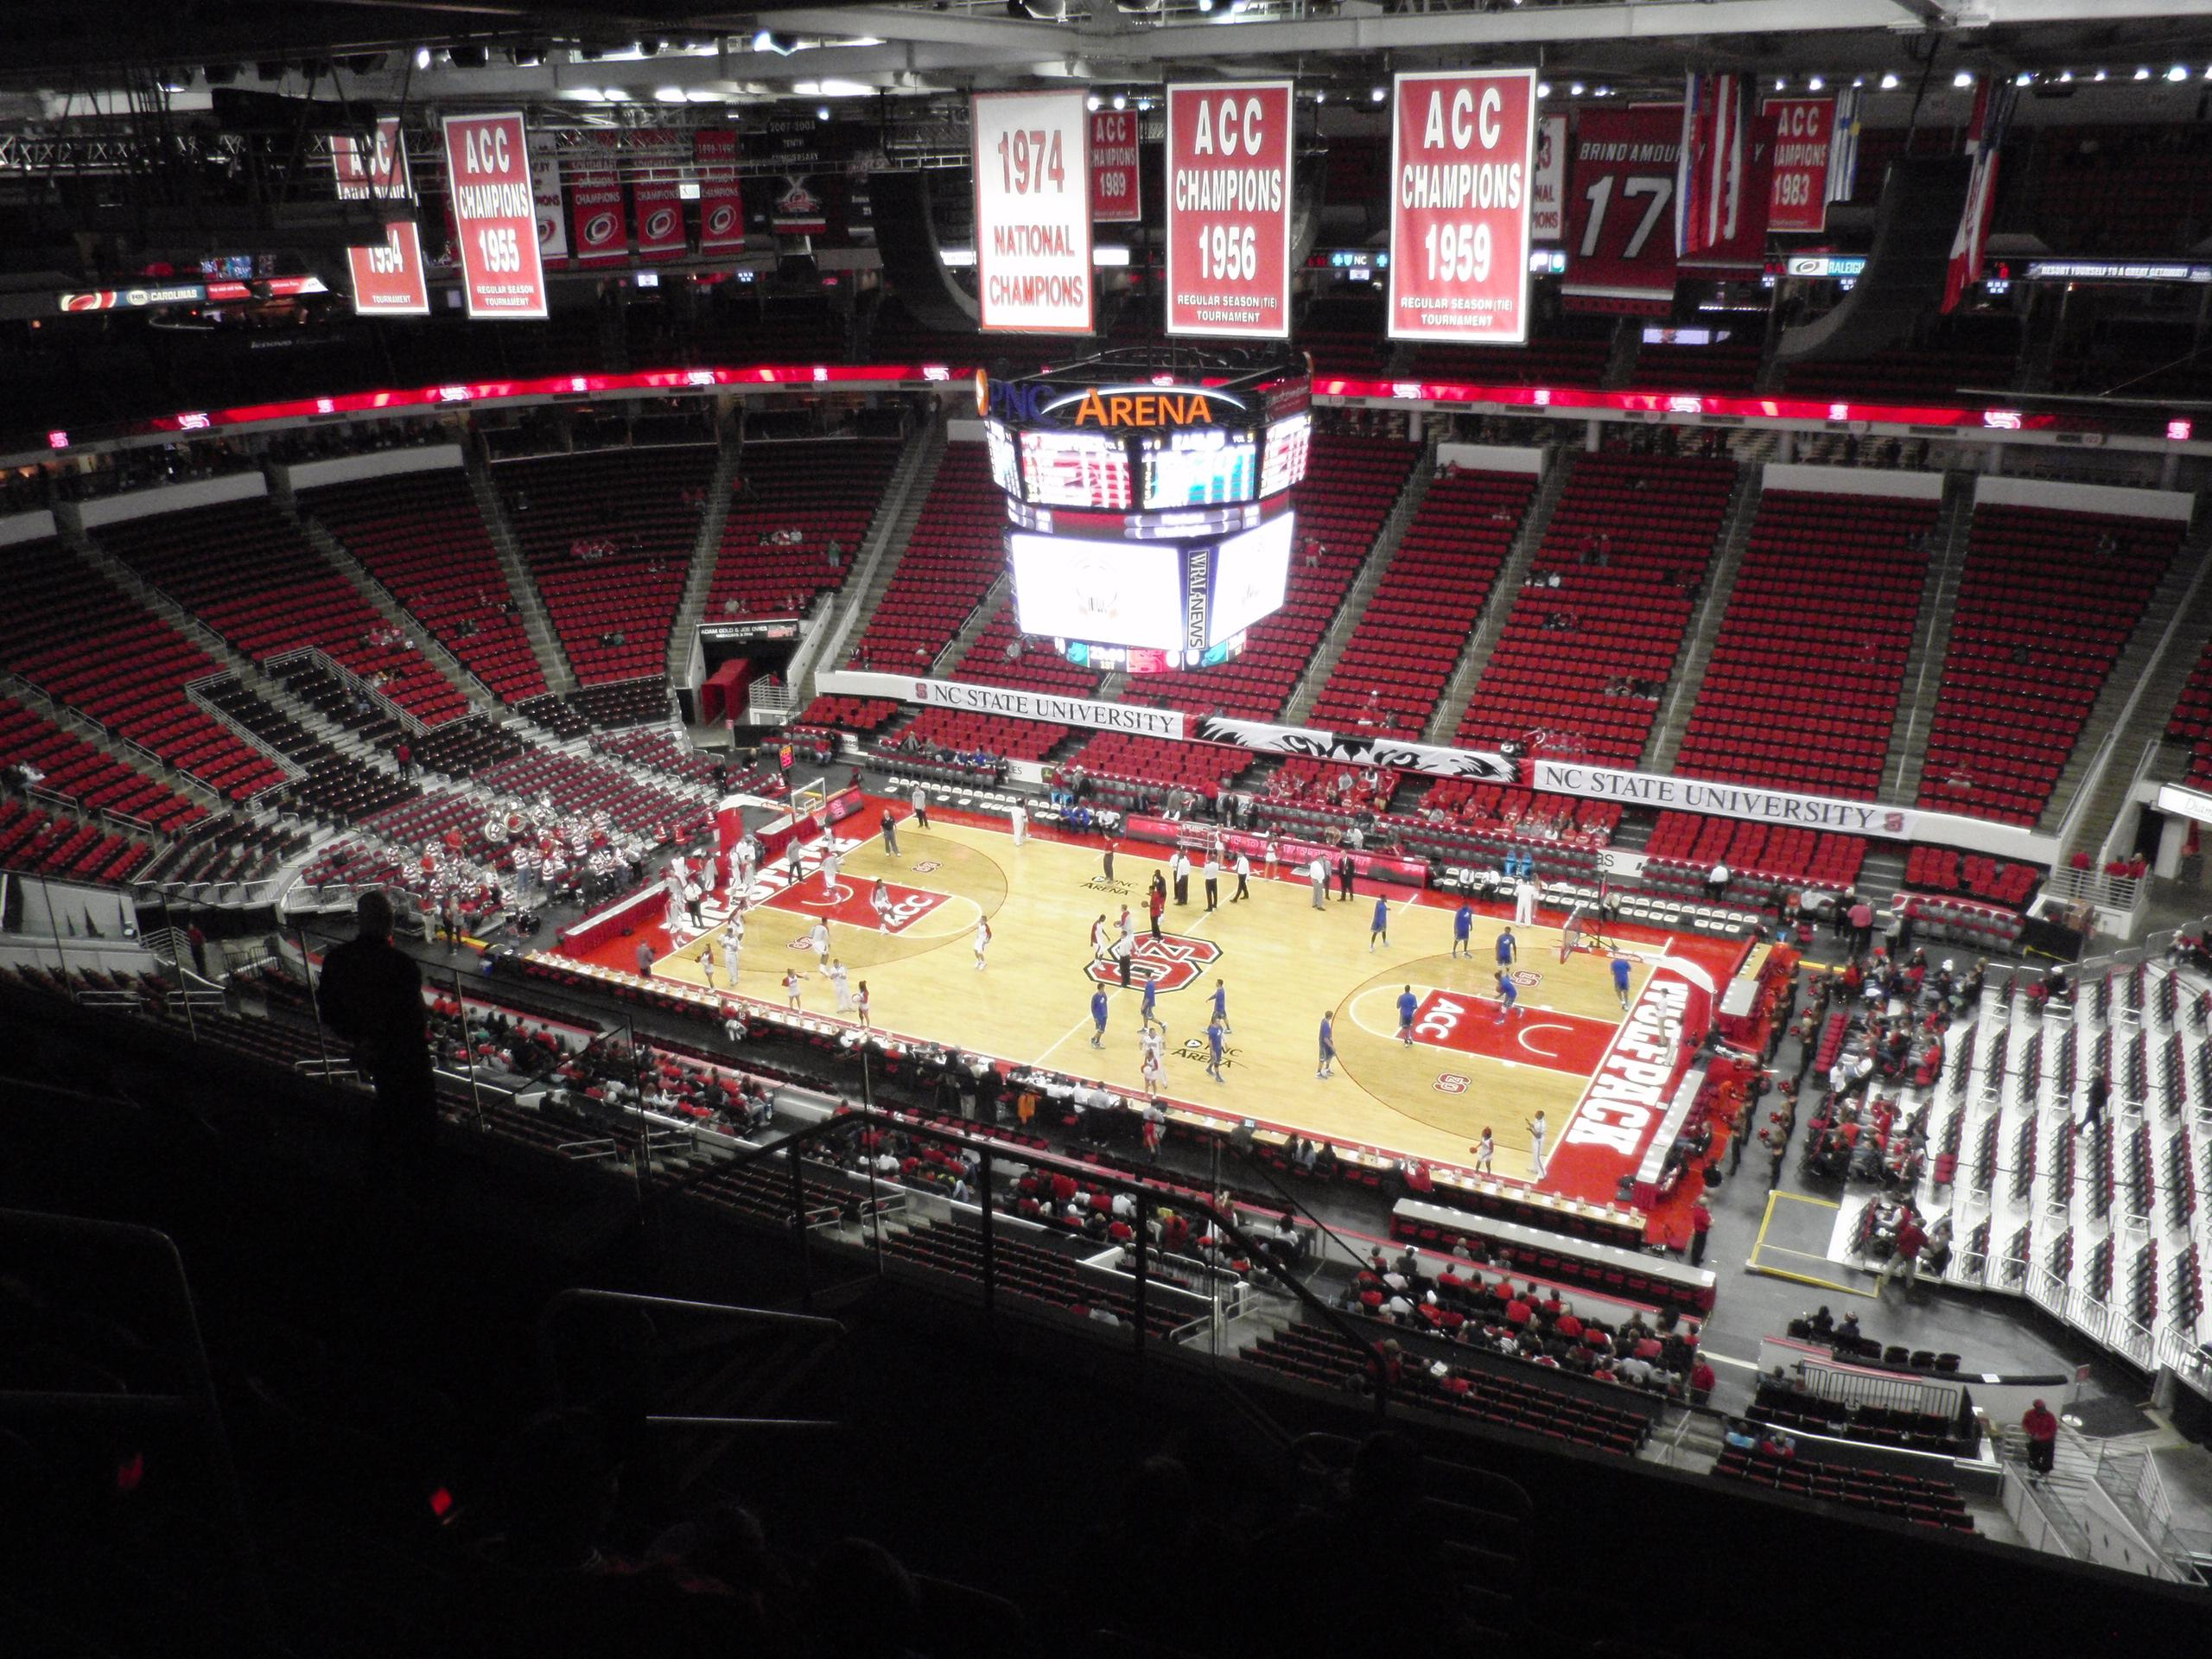 PNC Arena Section 302 Row H Seat 11